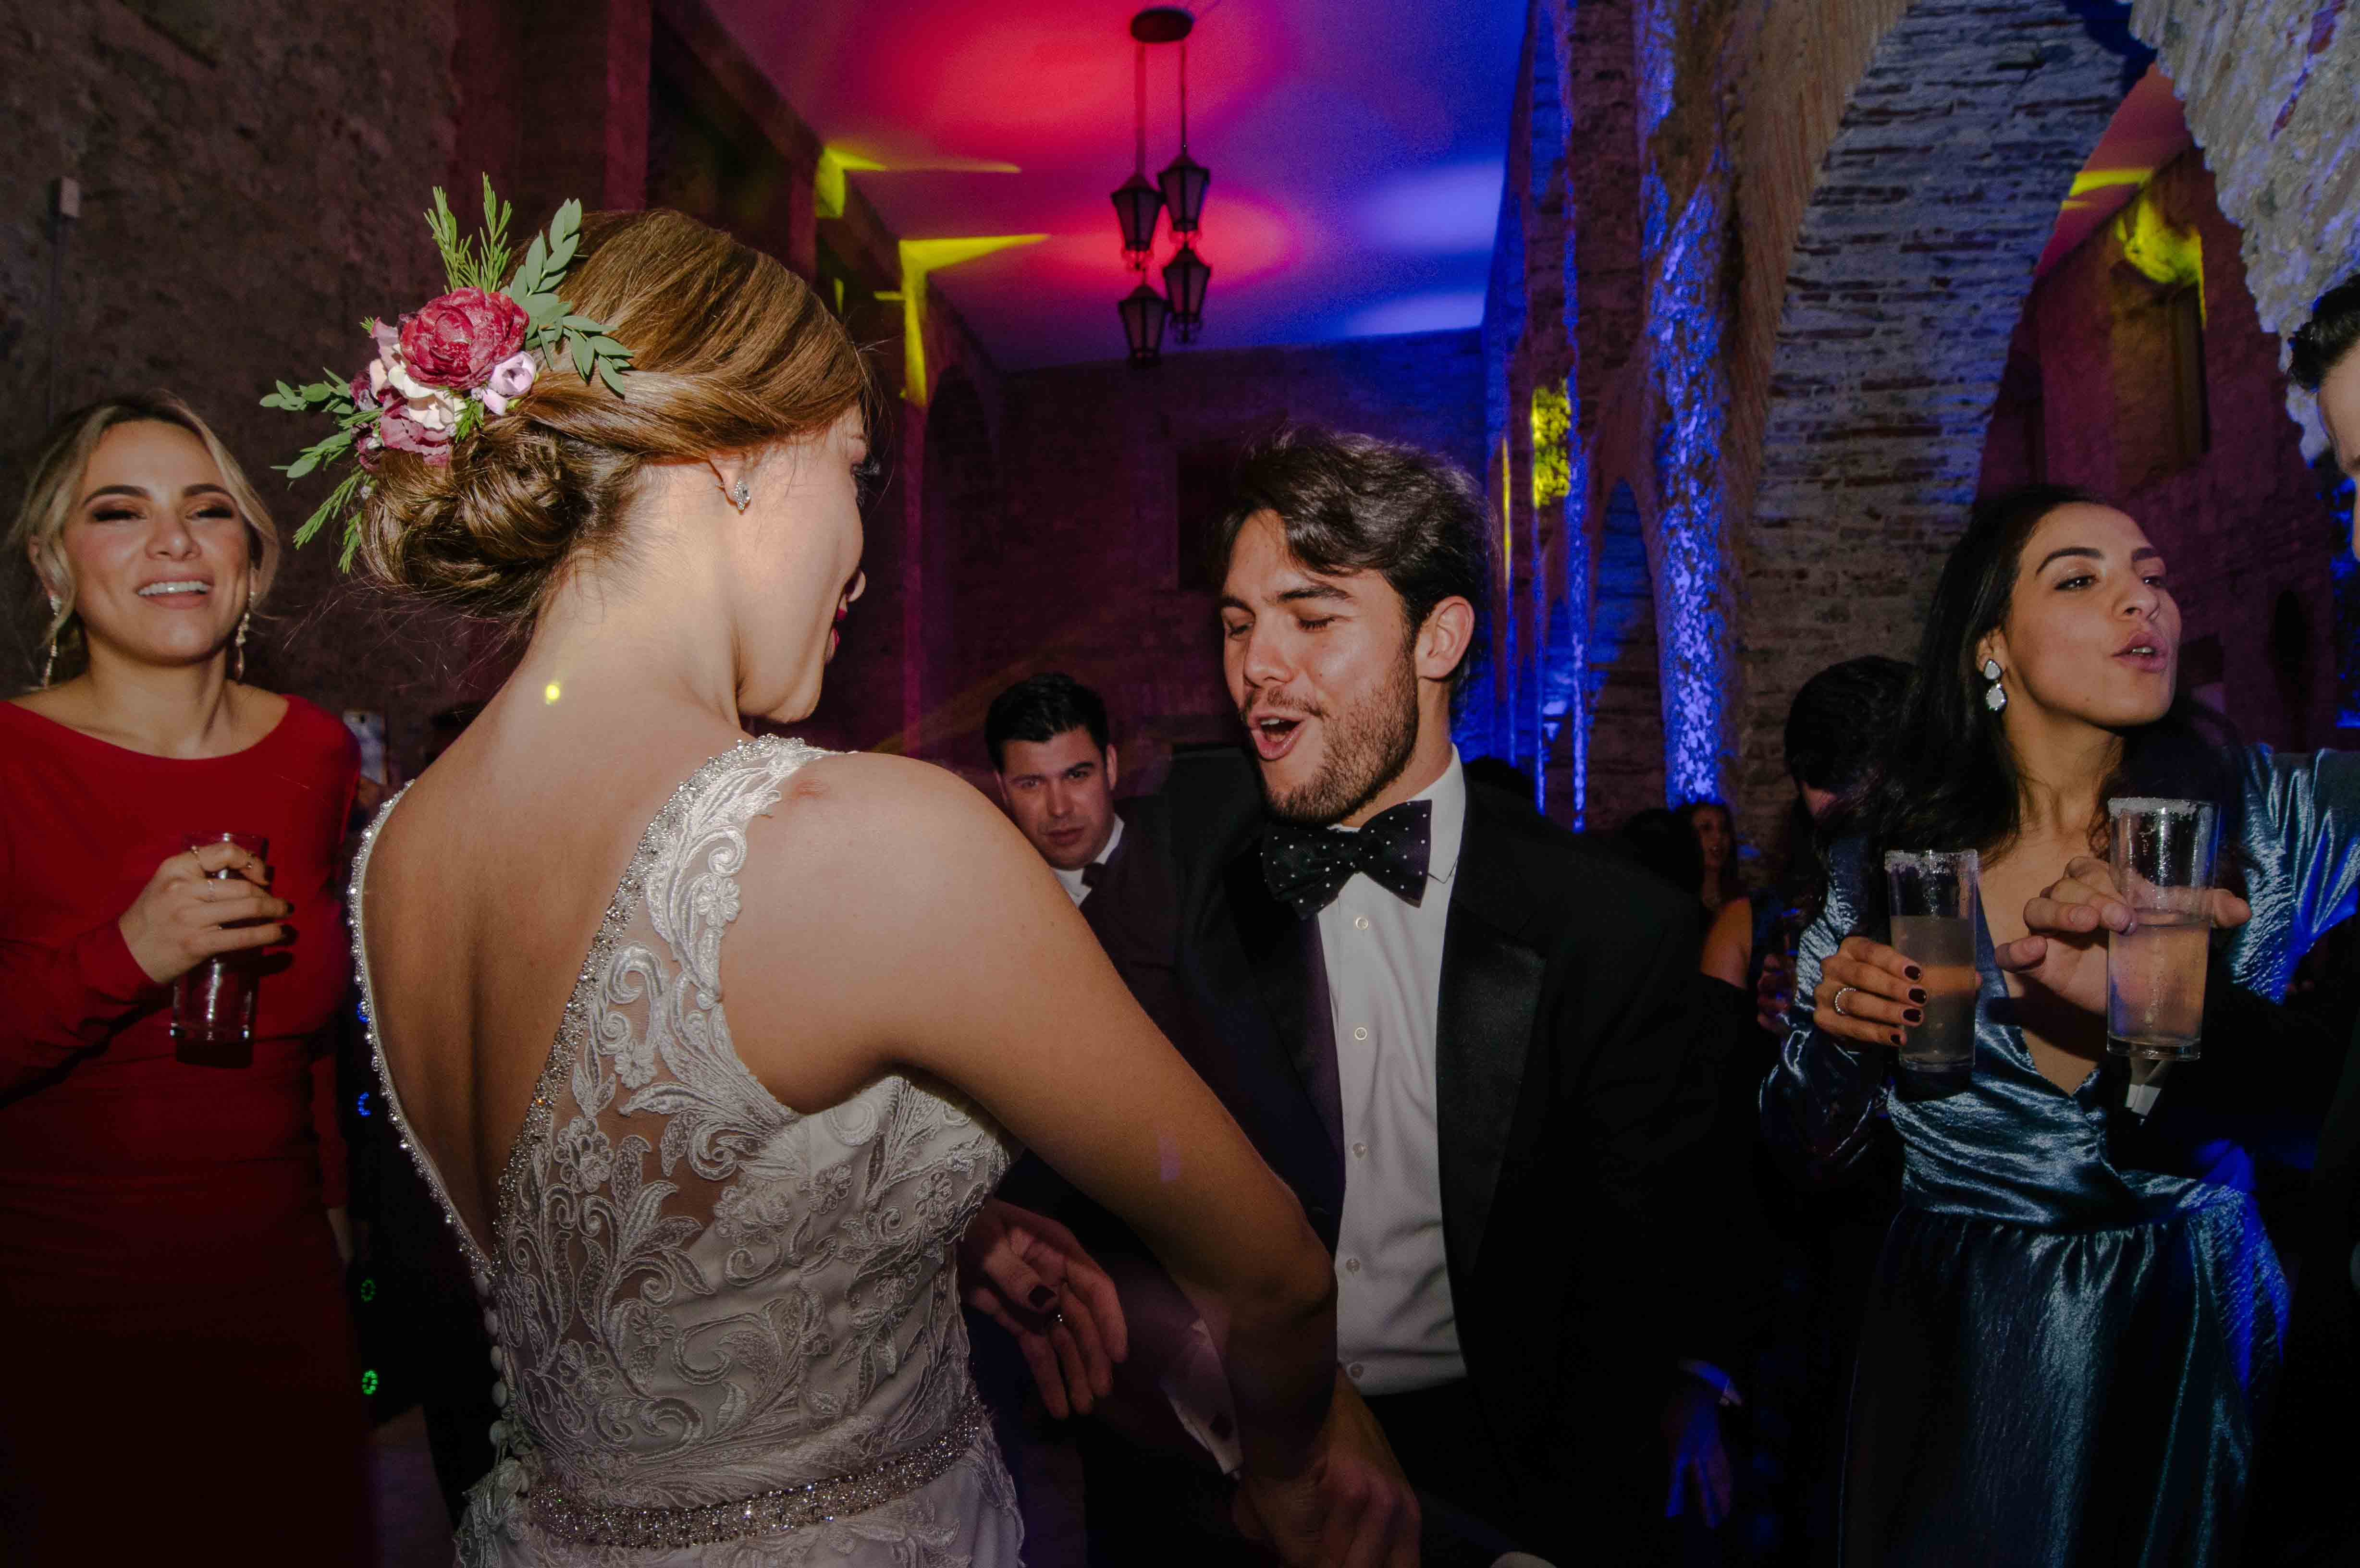 Man with tuxedo dancing with bride in nocturnal ambiance